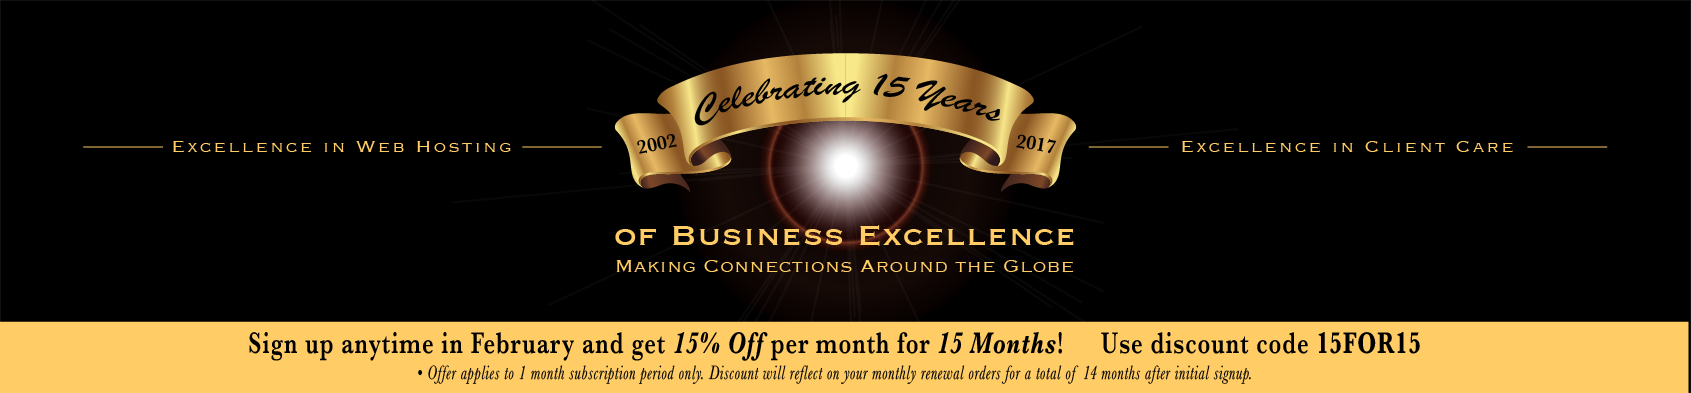 15 Year Anniversary Promo - Get 15% Off for 15 Months!